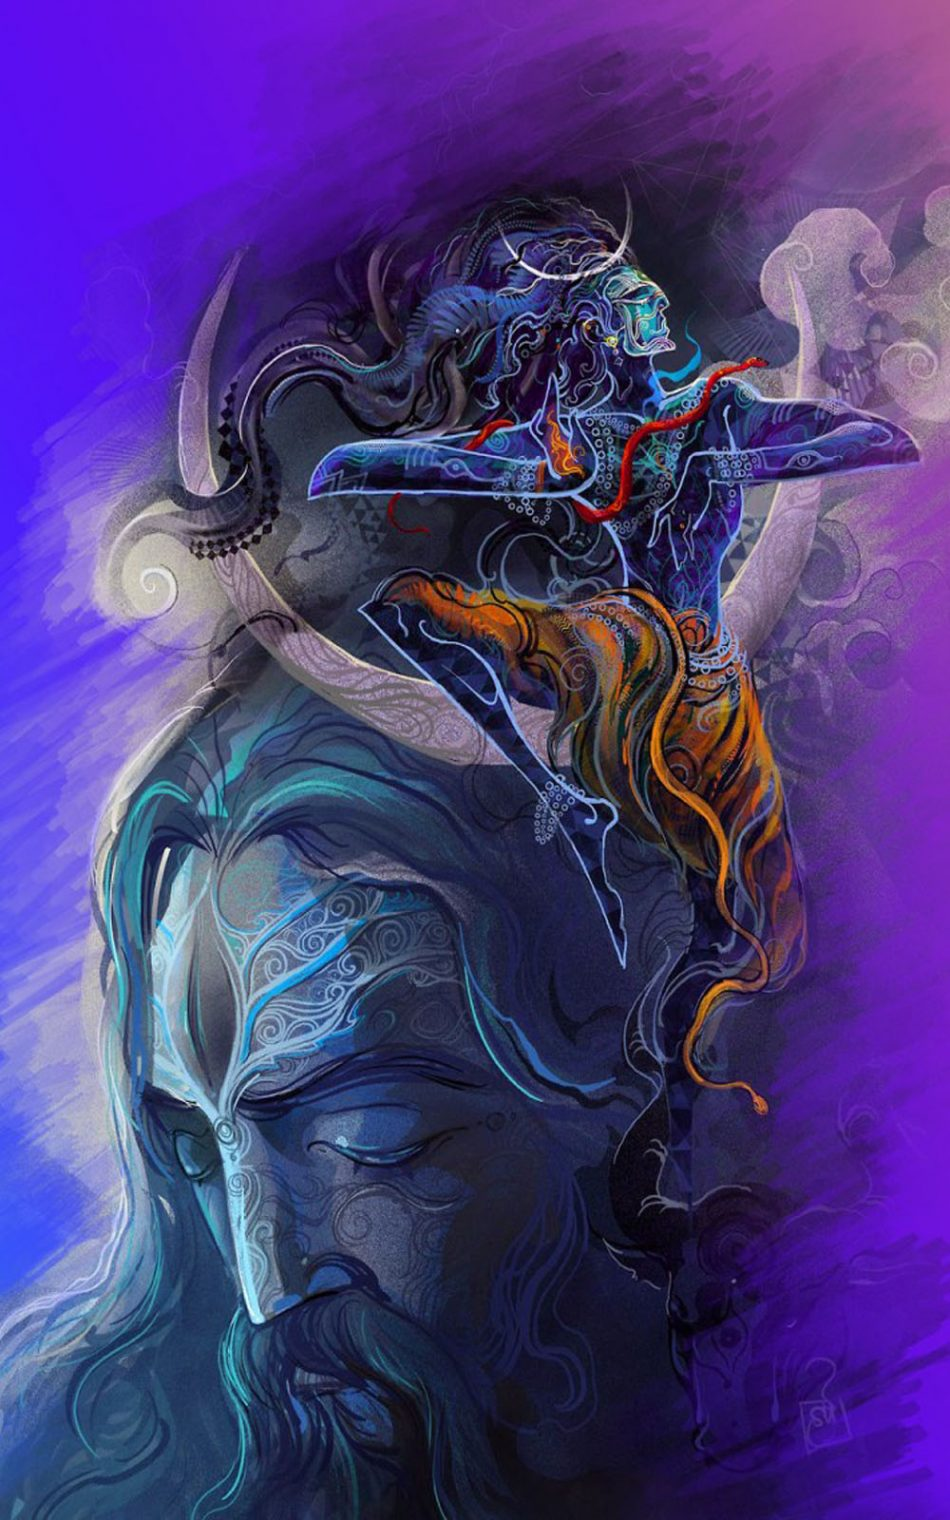 Download Lord Shiva Aghori Art Free Pure 4k Ultra Hd Mobile Wallpaper